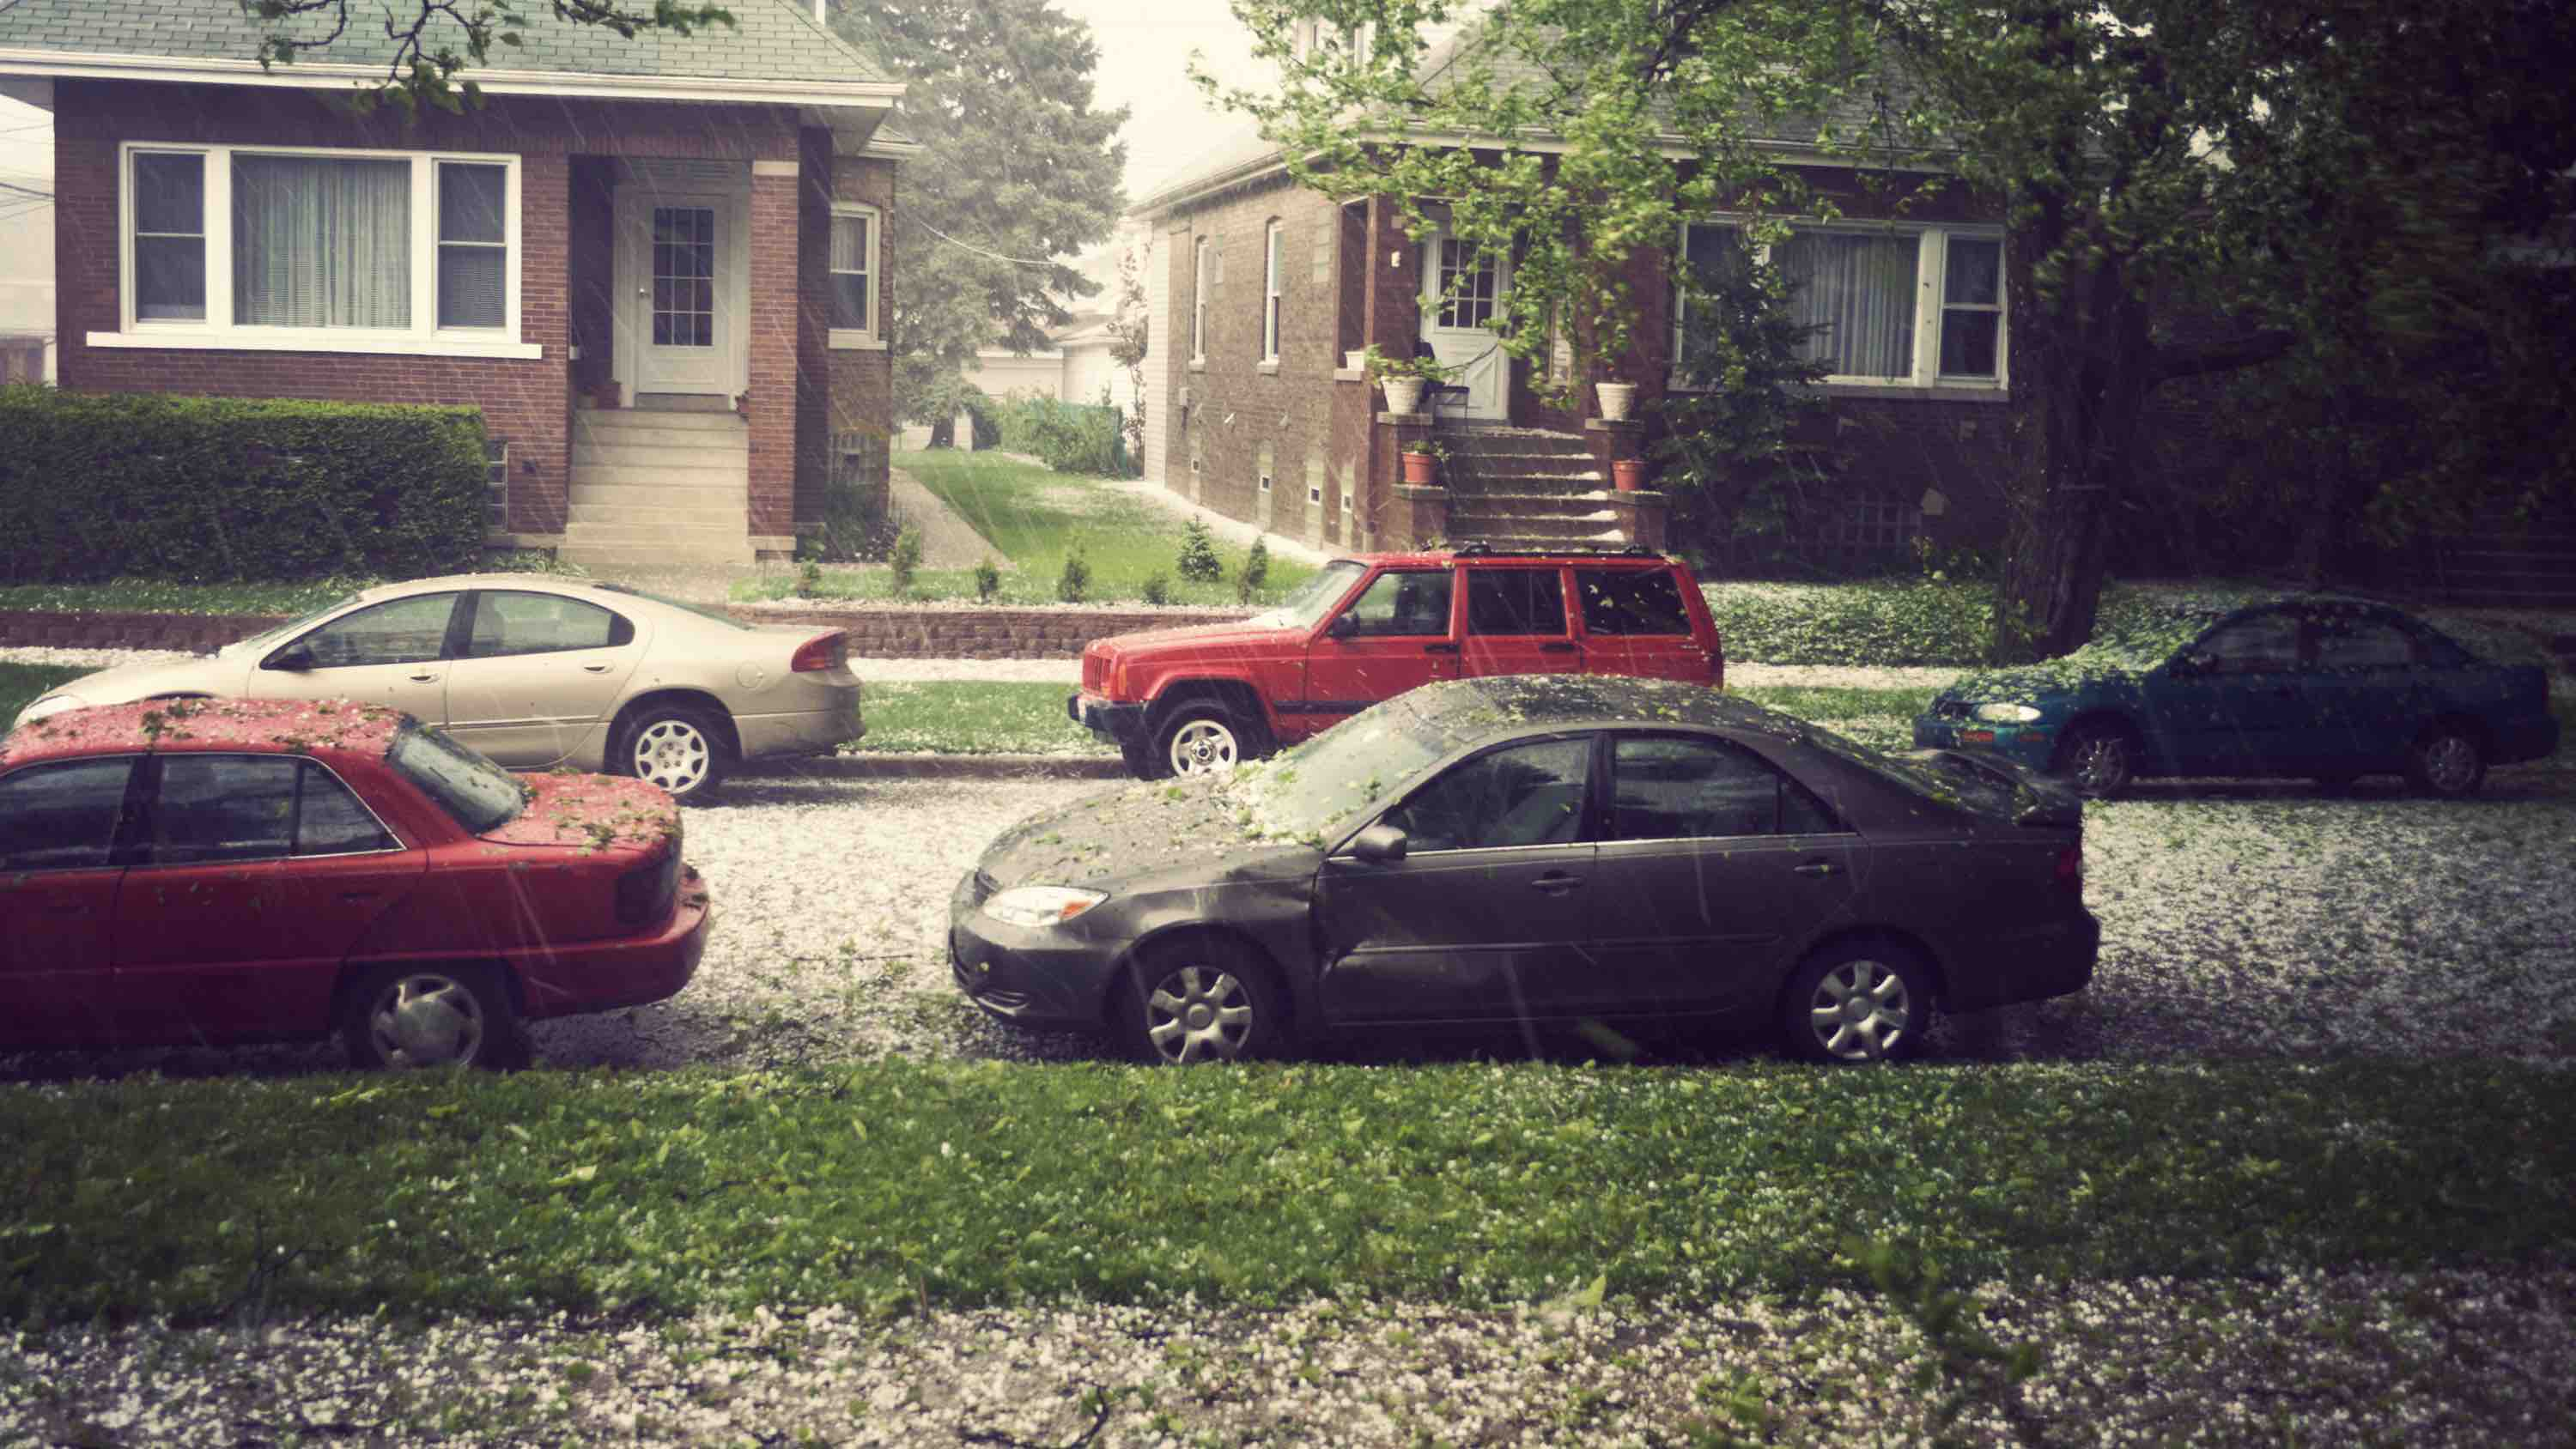 Houses and cars getting hit by hail and damaged during a storm.